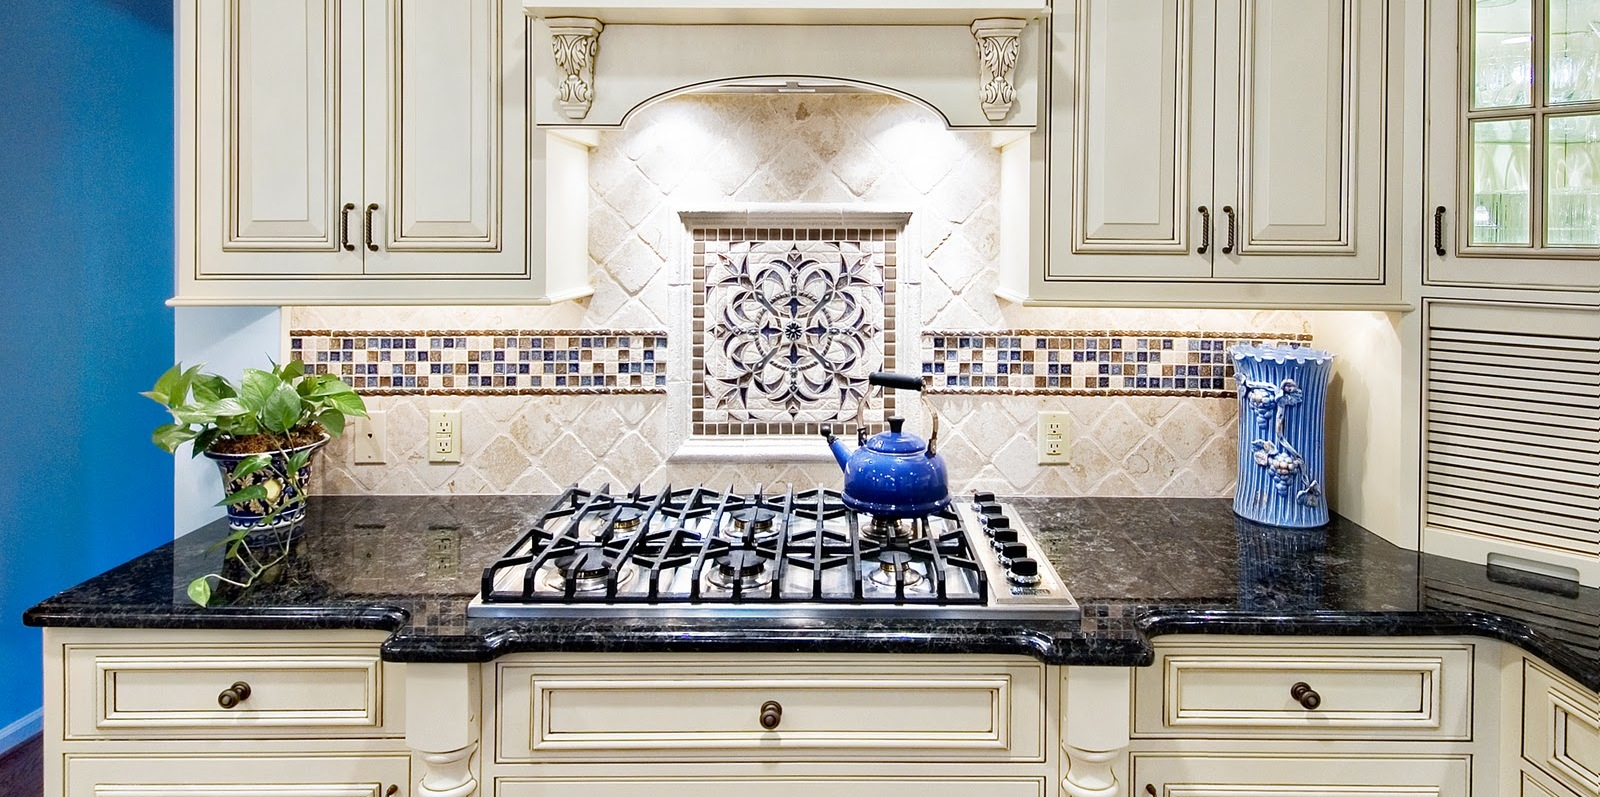 Sacramento Kitchen Countertops | Sacramento Granite Countertops |  Countertopdesigns.net